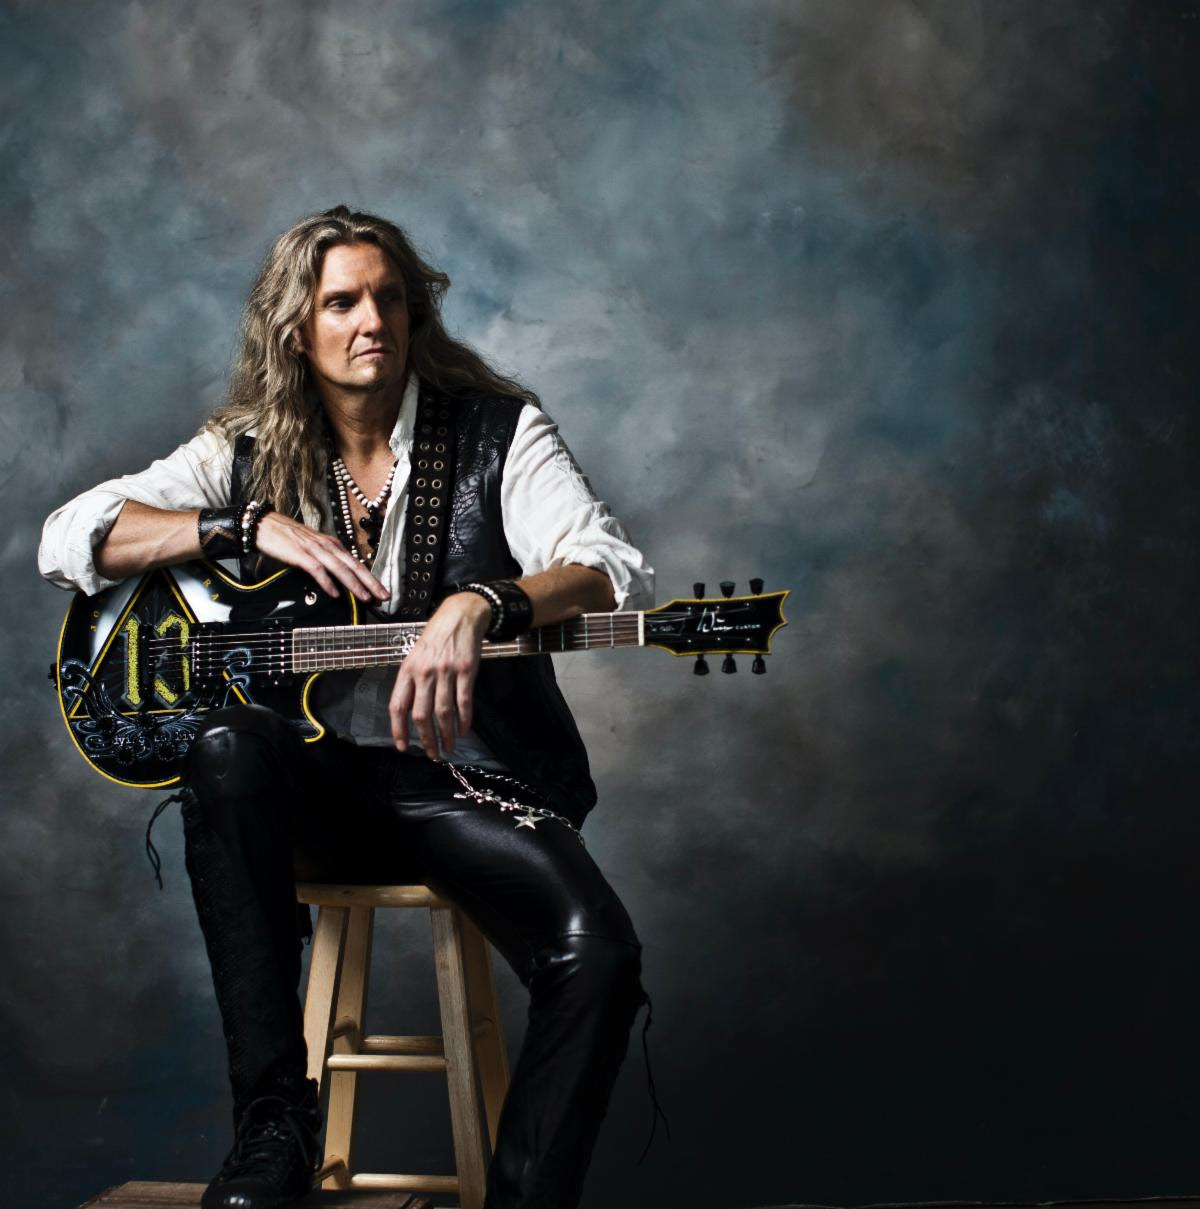 """Joel Hoekstra's 13 Announce New Album """"Running Games"""" Due 2/2021, New Single Out Today"""